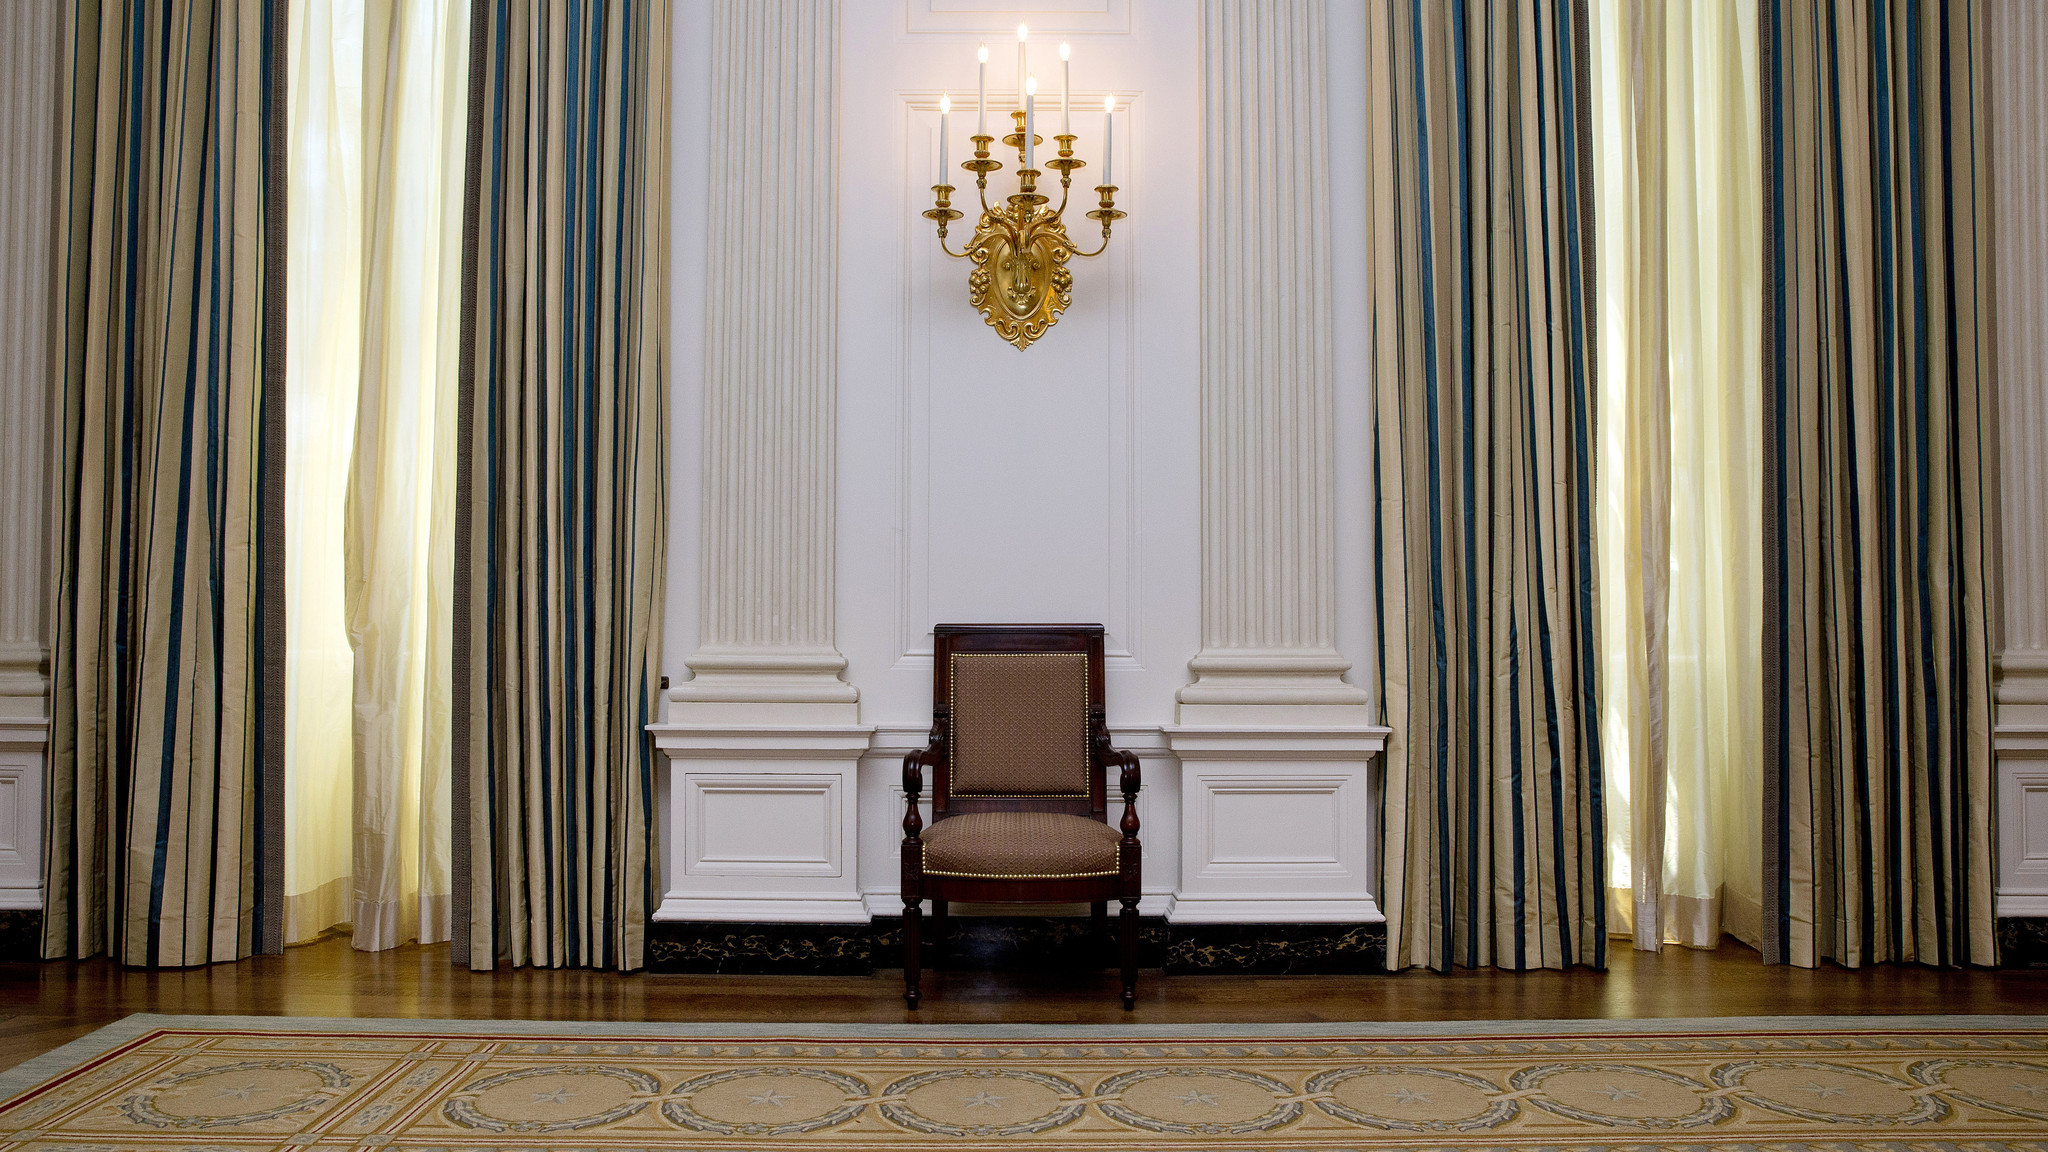 A 590000 Makeover For The White Houses State Dining Room